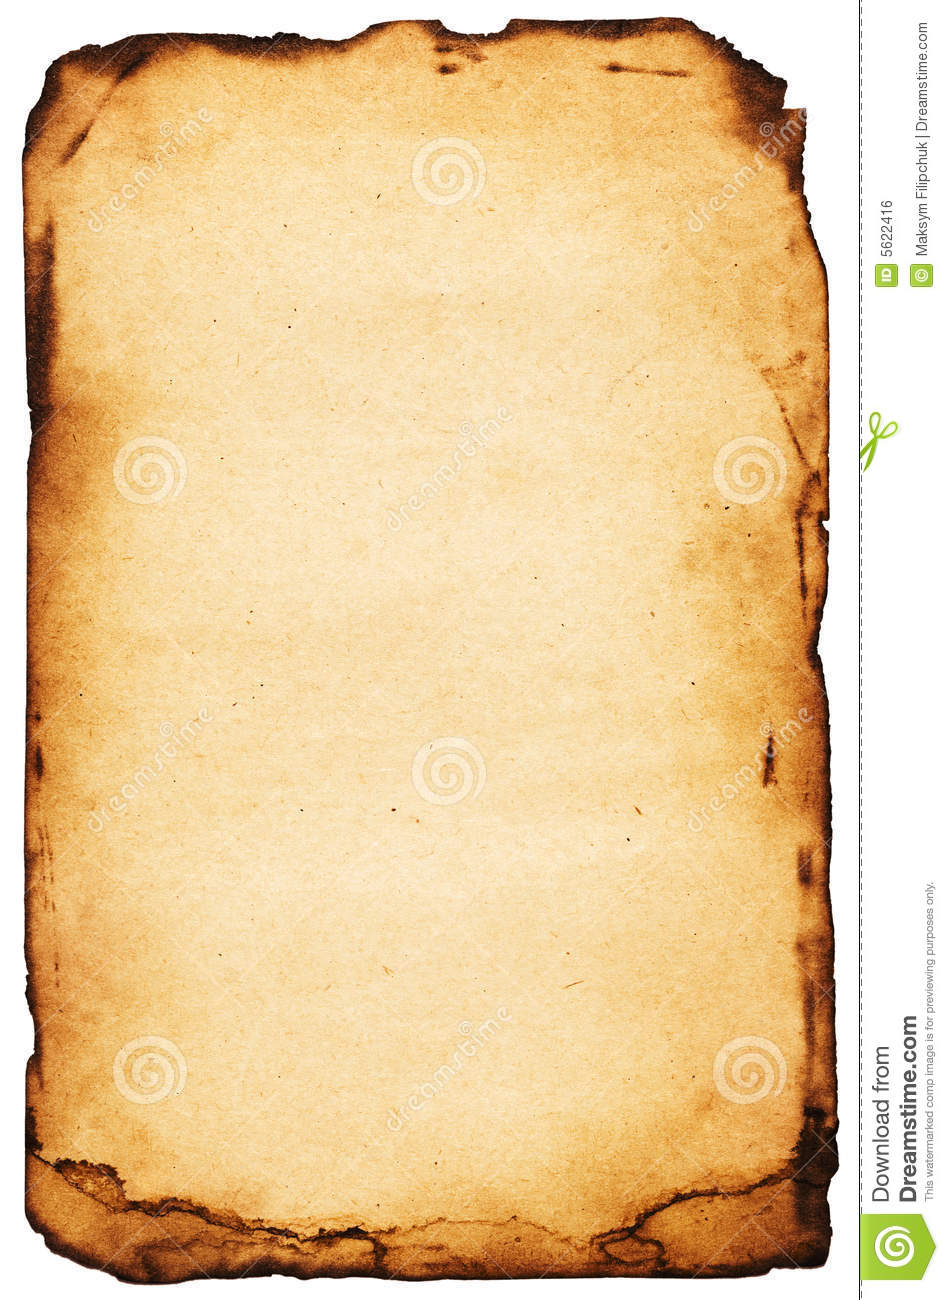 burnt paper royalty free stock image